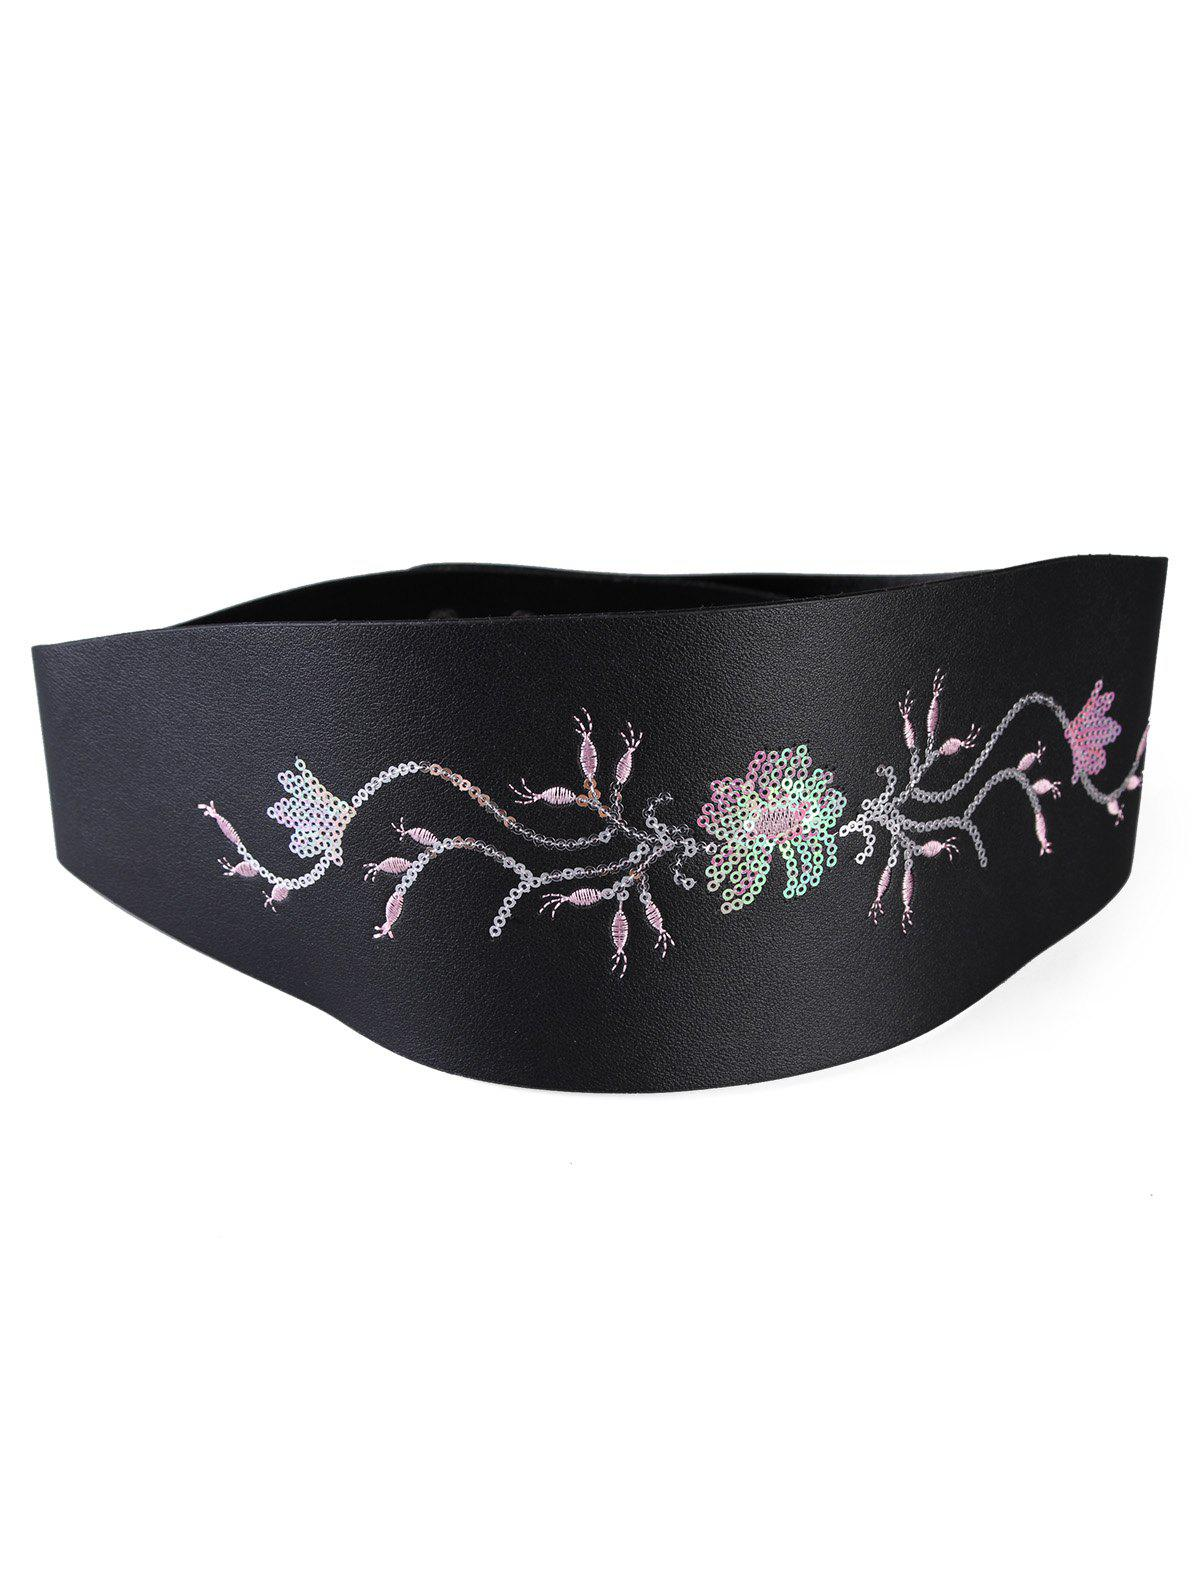 Shop Vintage Floral Sequins Decorative Wide Waist Belt